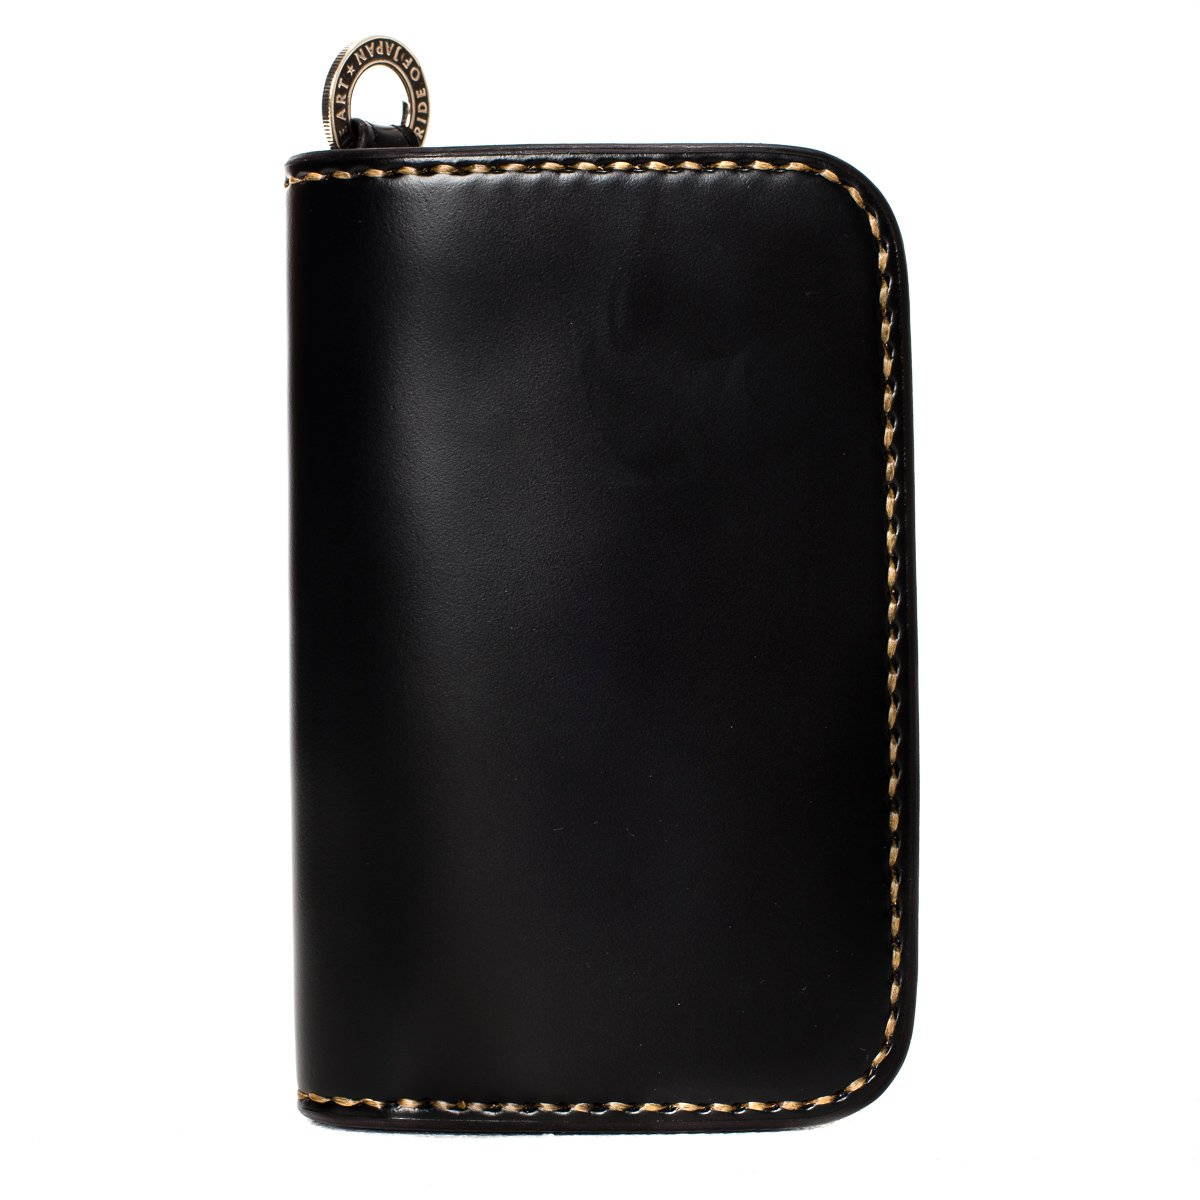 Iron Heart IHG-02 Medium Shell Cordovan Wallet Black